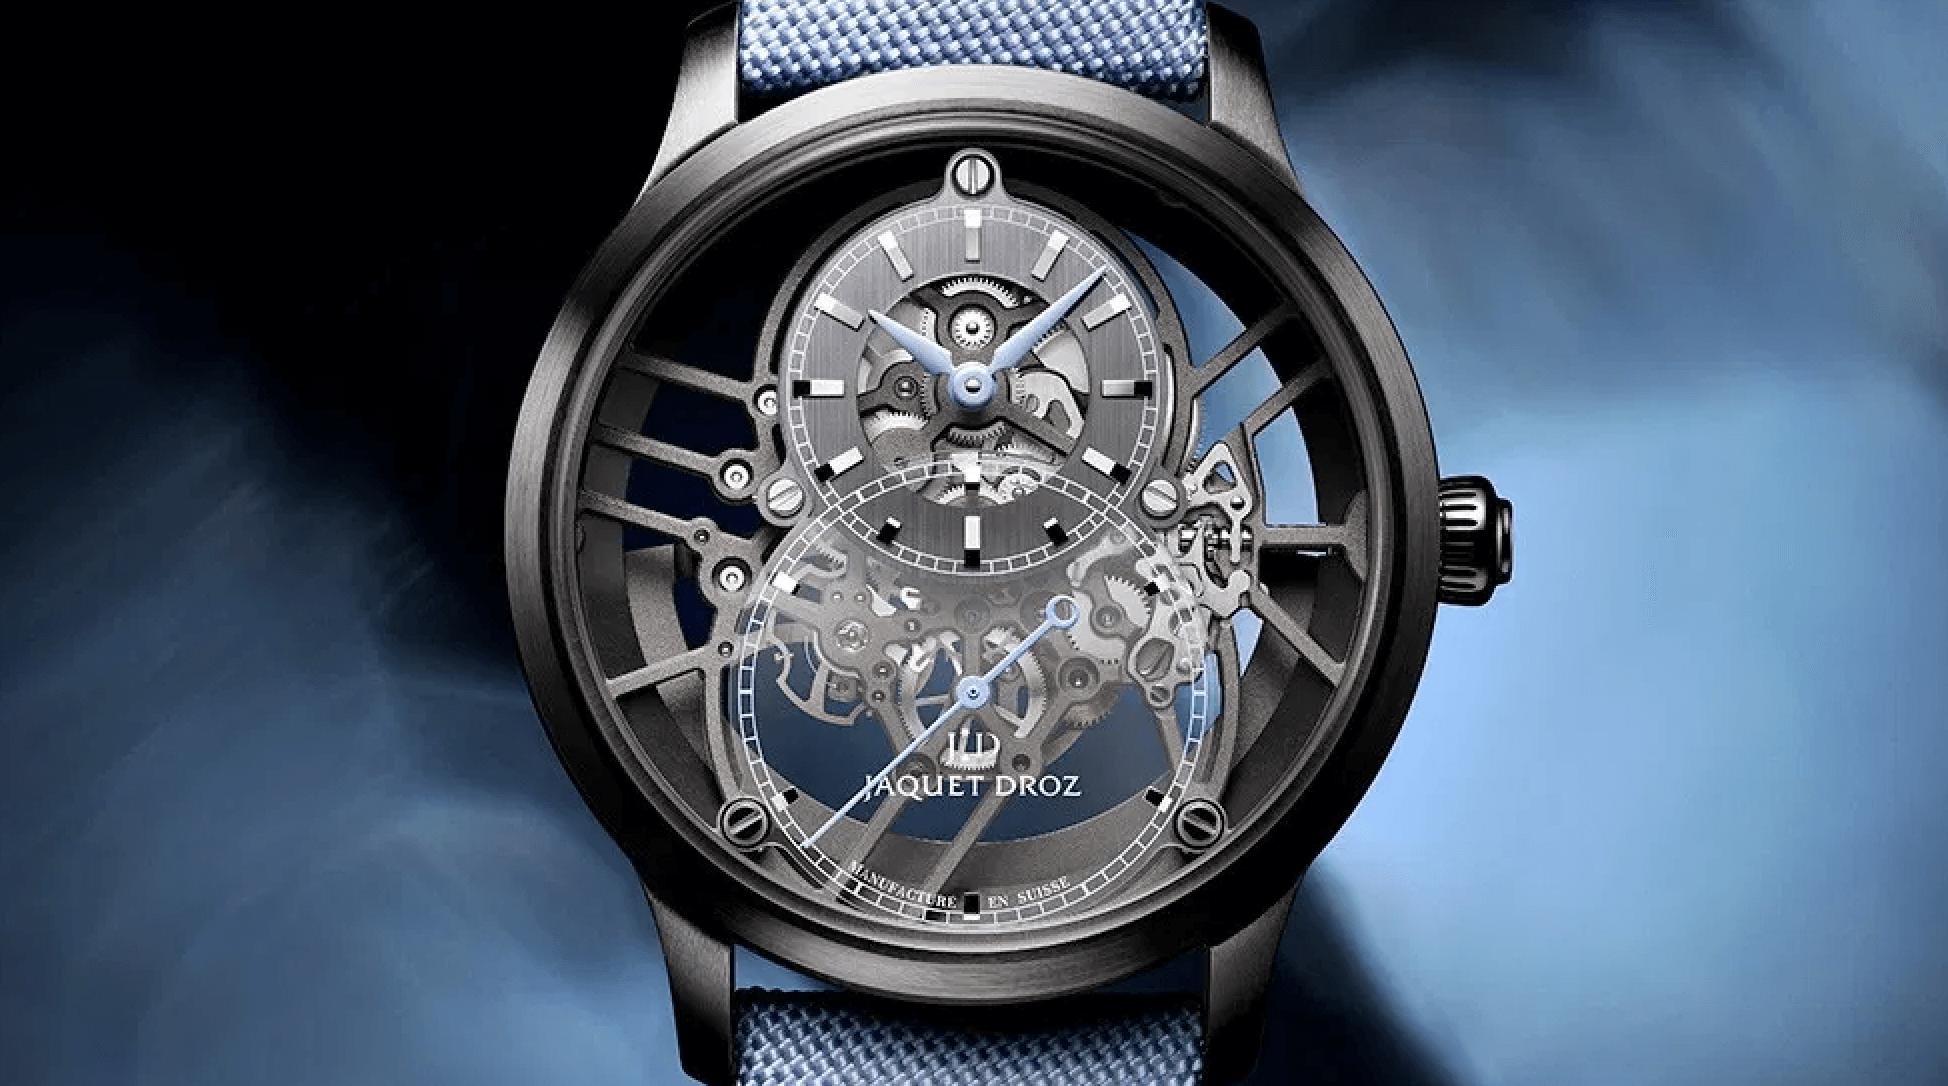 JAQUET DROZ GRANDE SECONDE SKELET-ONE TRİO saat blog yazı